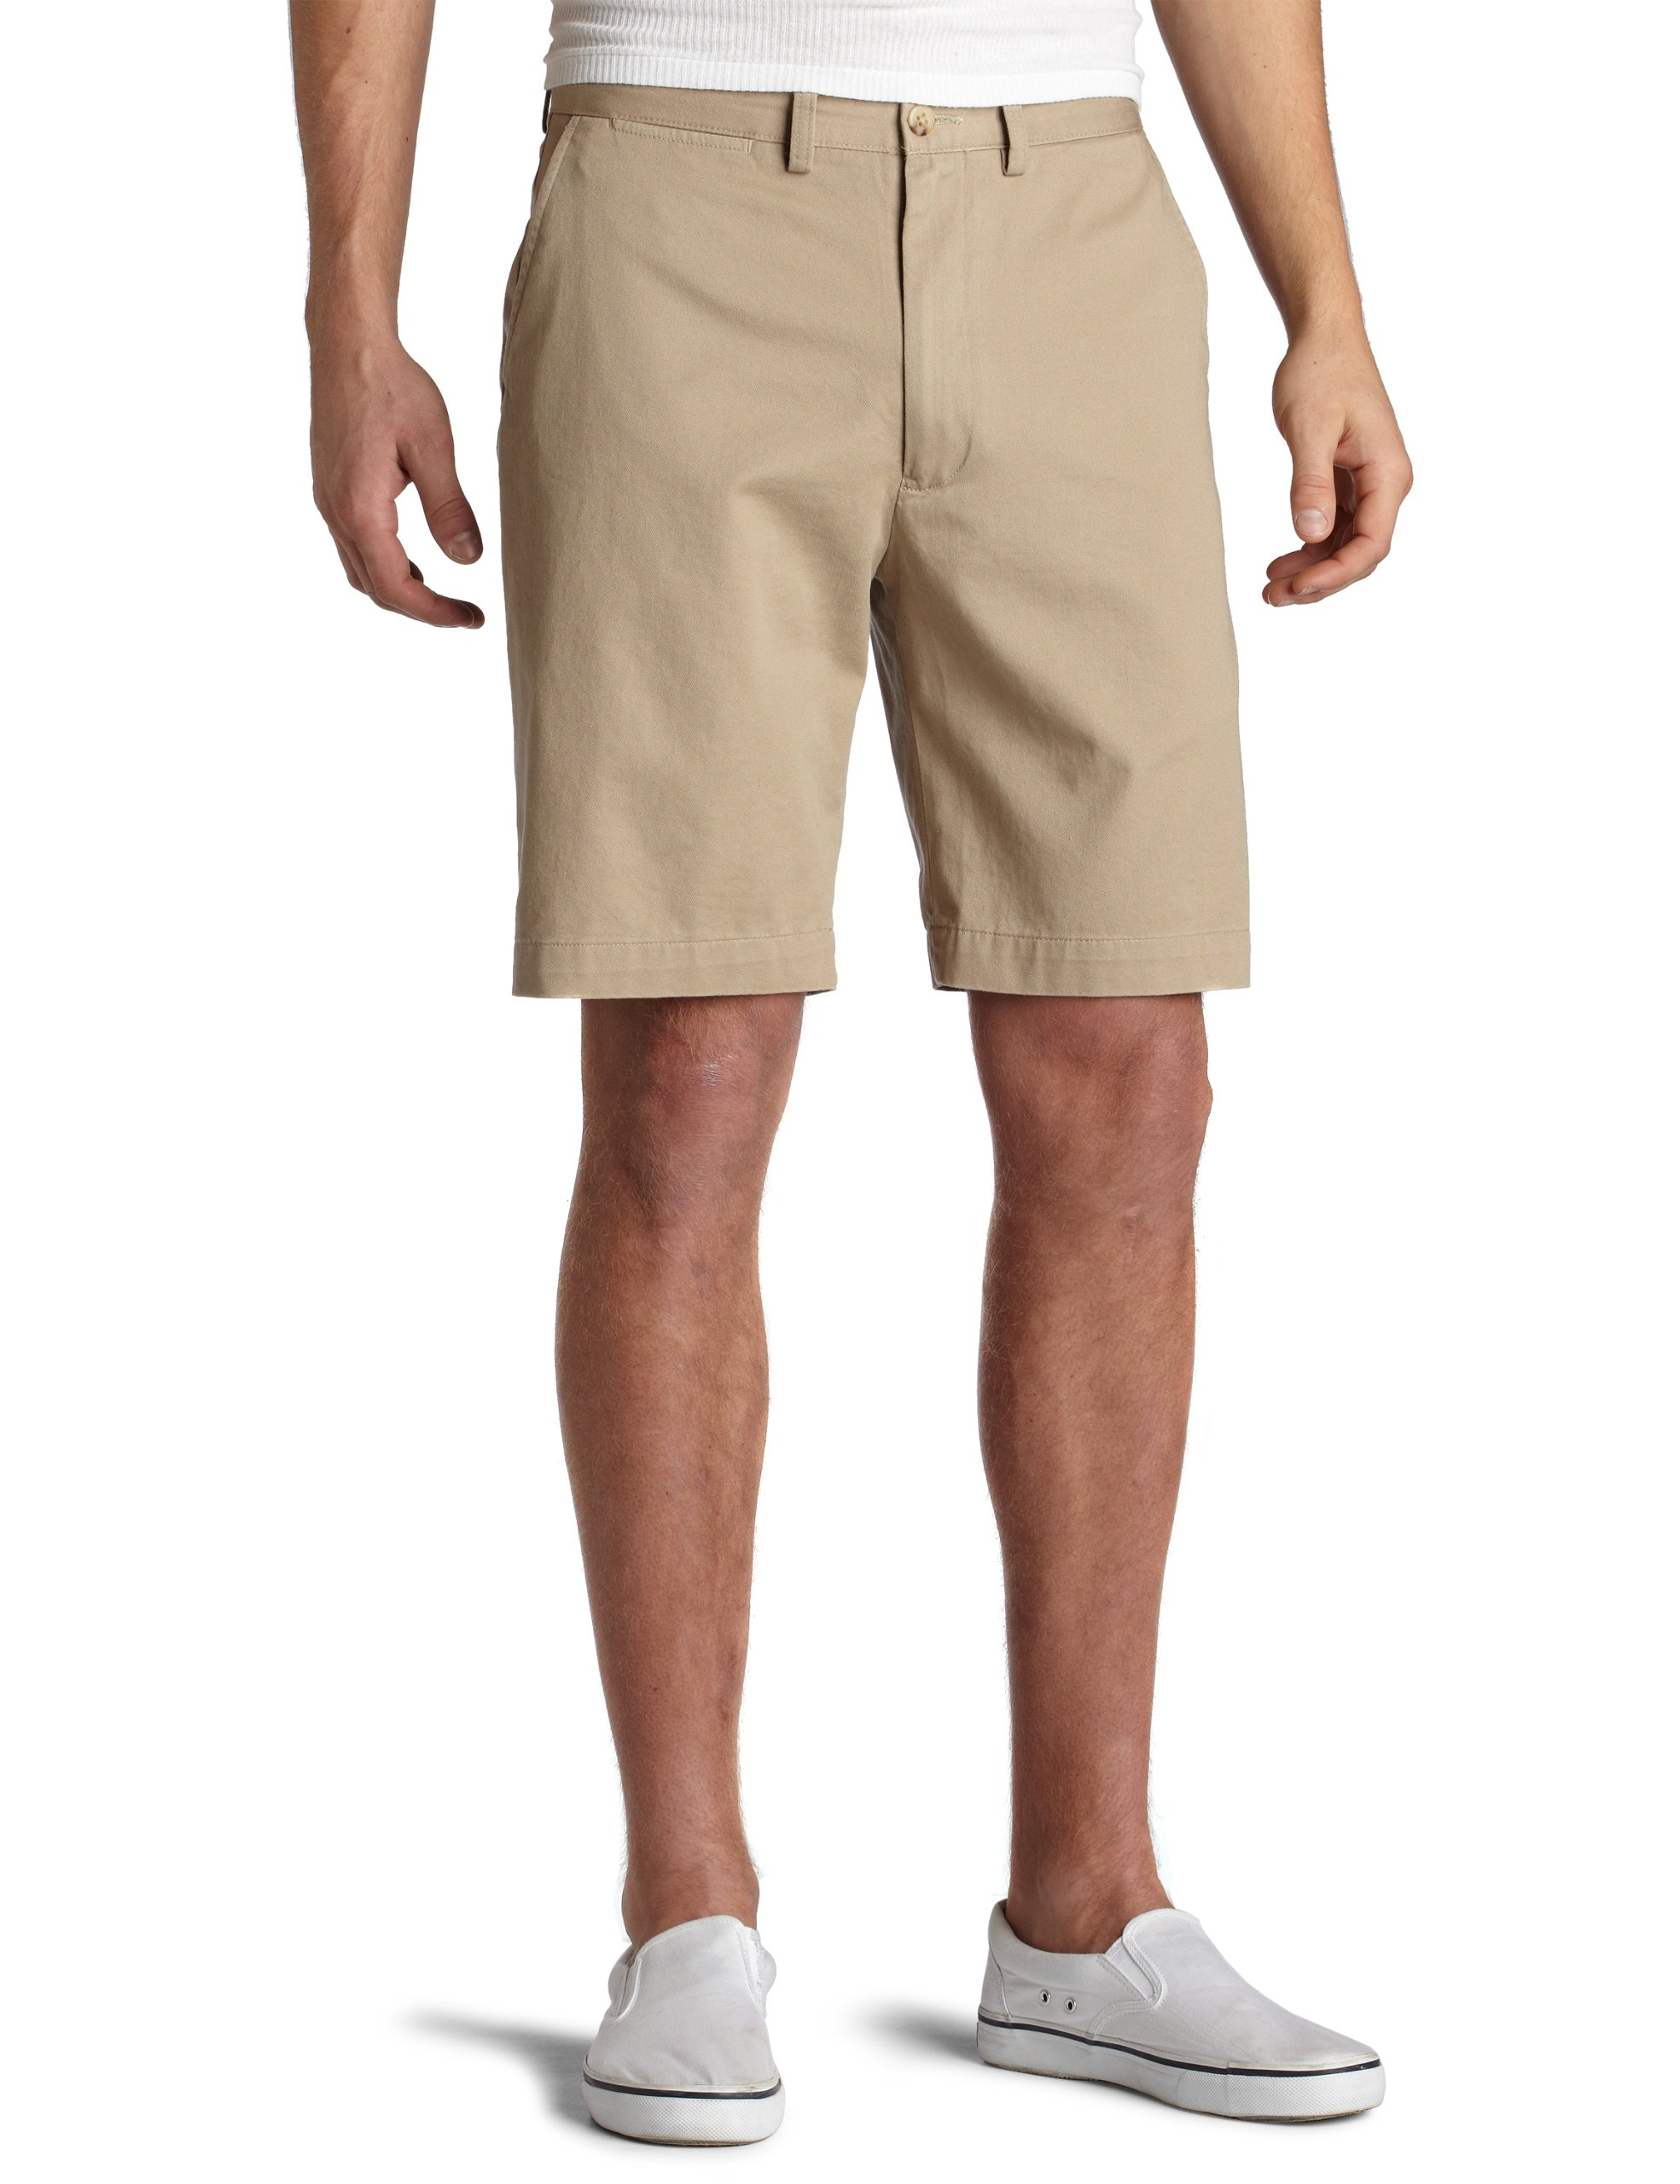 Nautica Men's Twill Flat Front Short,True Khaki,33 by Nautica (Image #1)